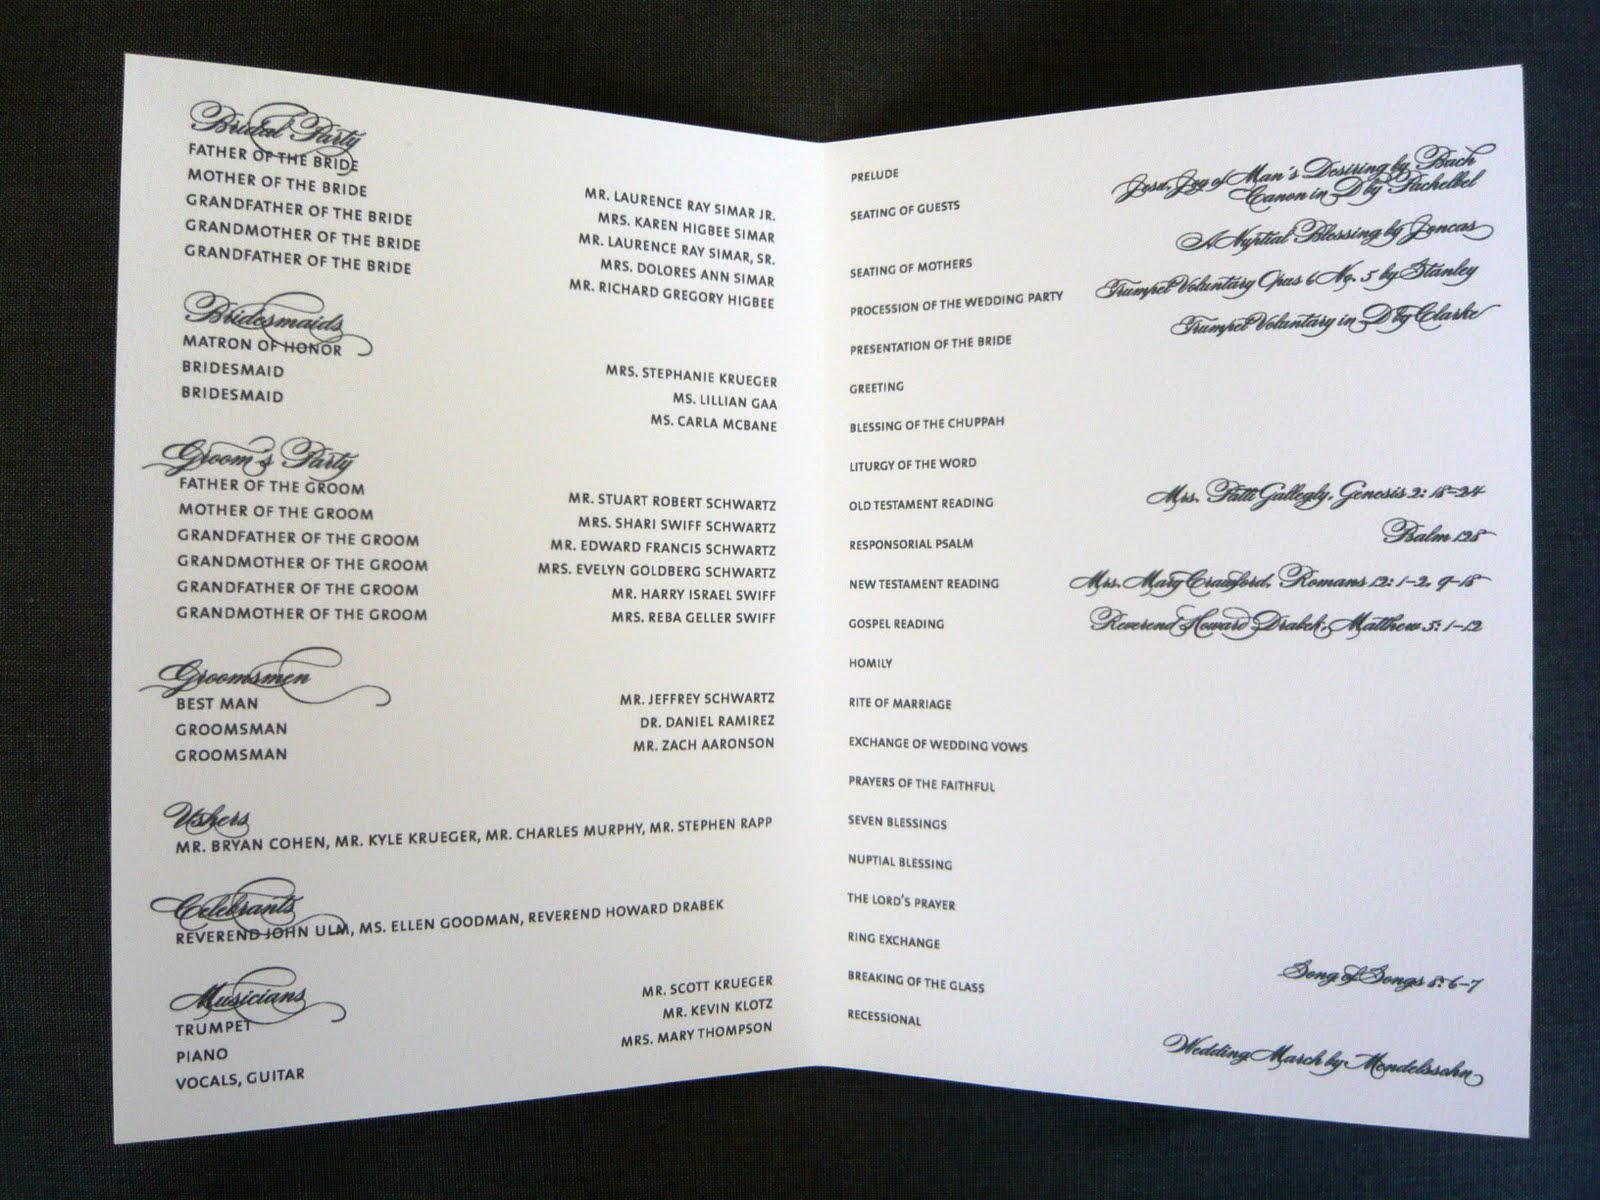 Wedding Program Inclusions What Should Be Included In A Wedding Program?. Wedding  Program Inclusions